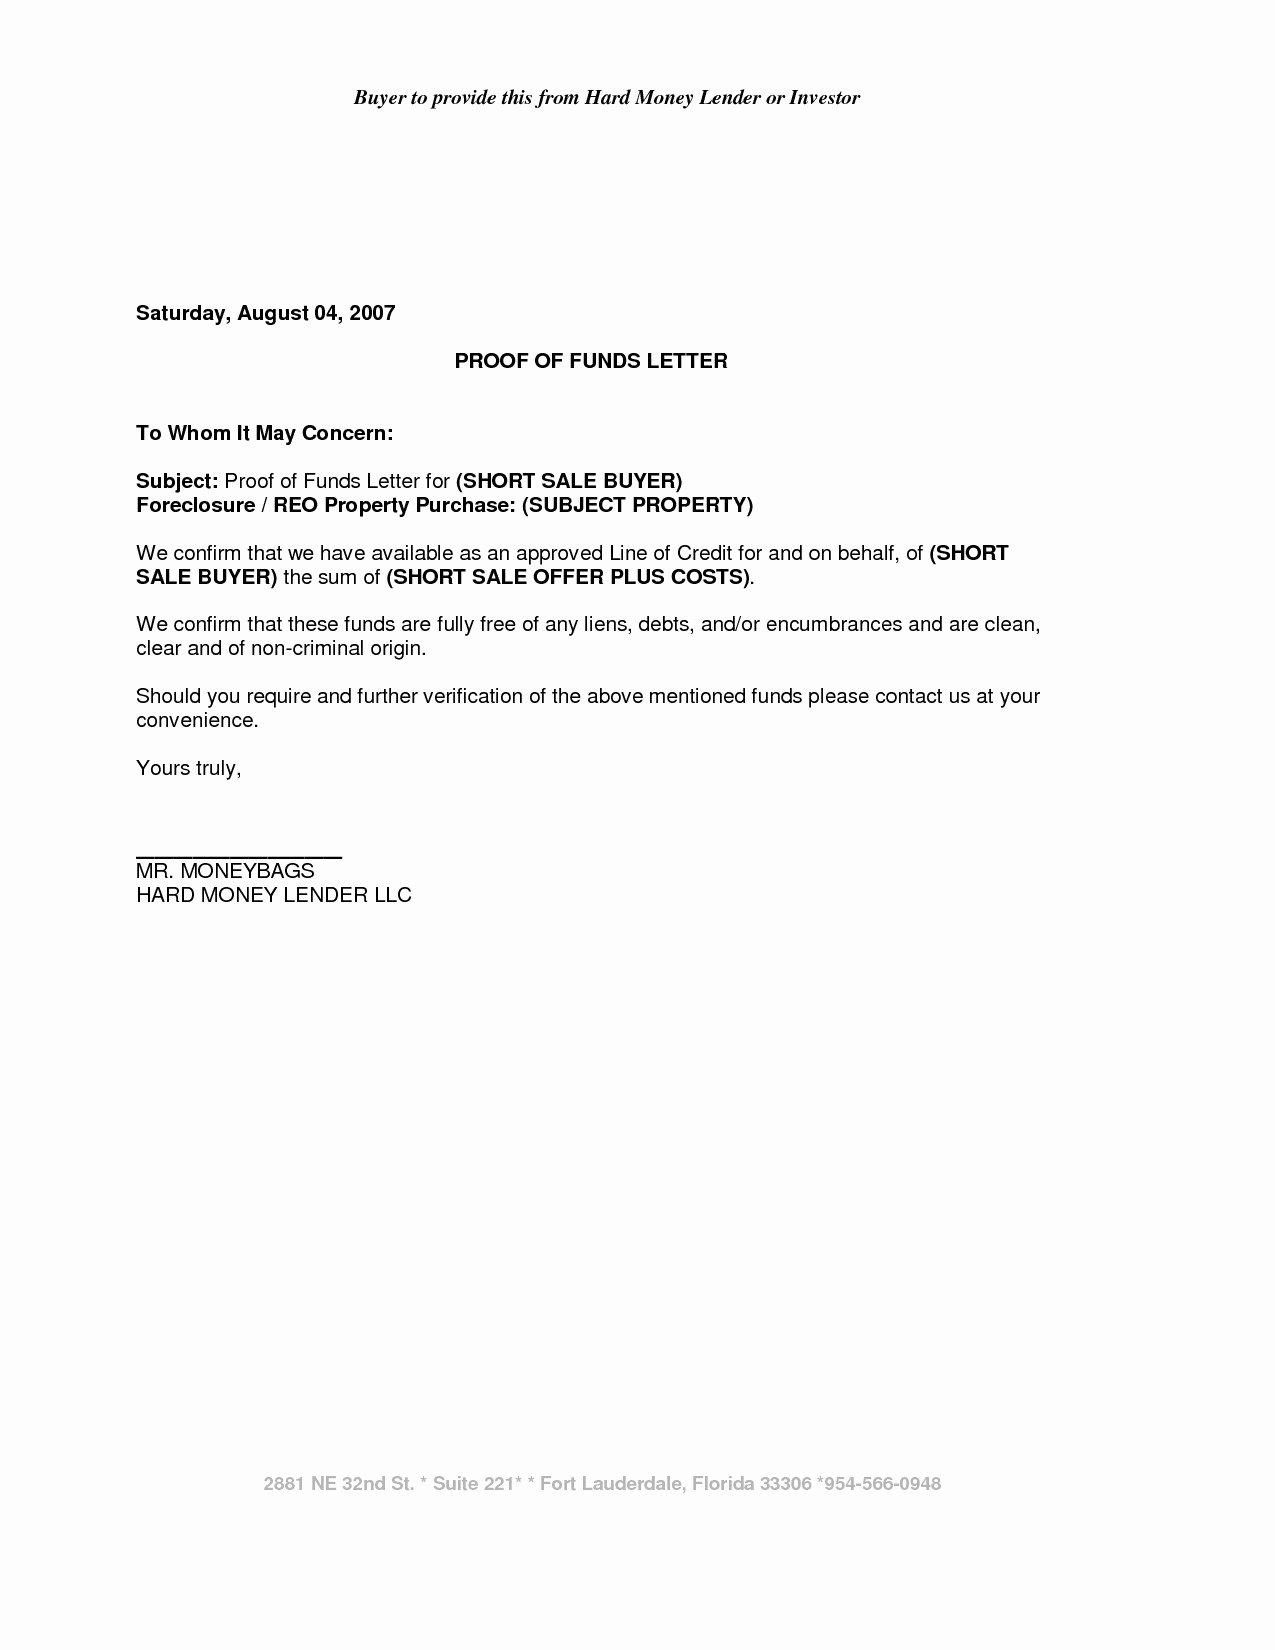 Proof Of Funds Letter Template Fresh Vehicle Repossession Letter Template Samples